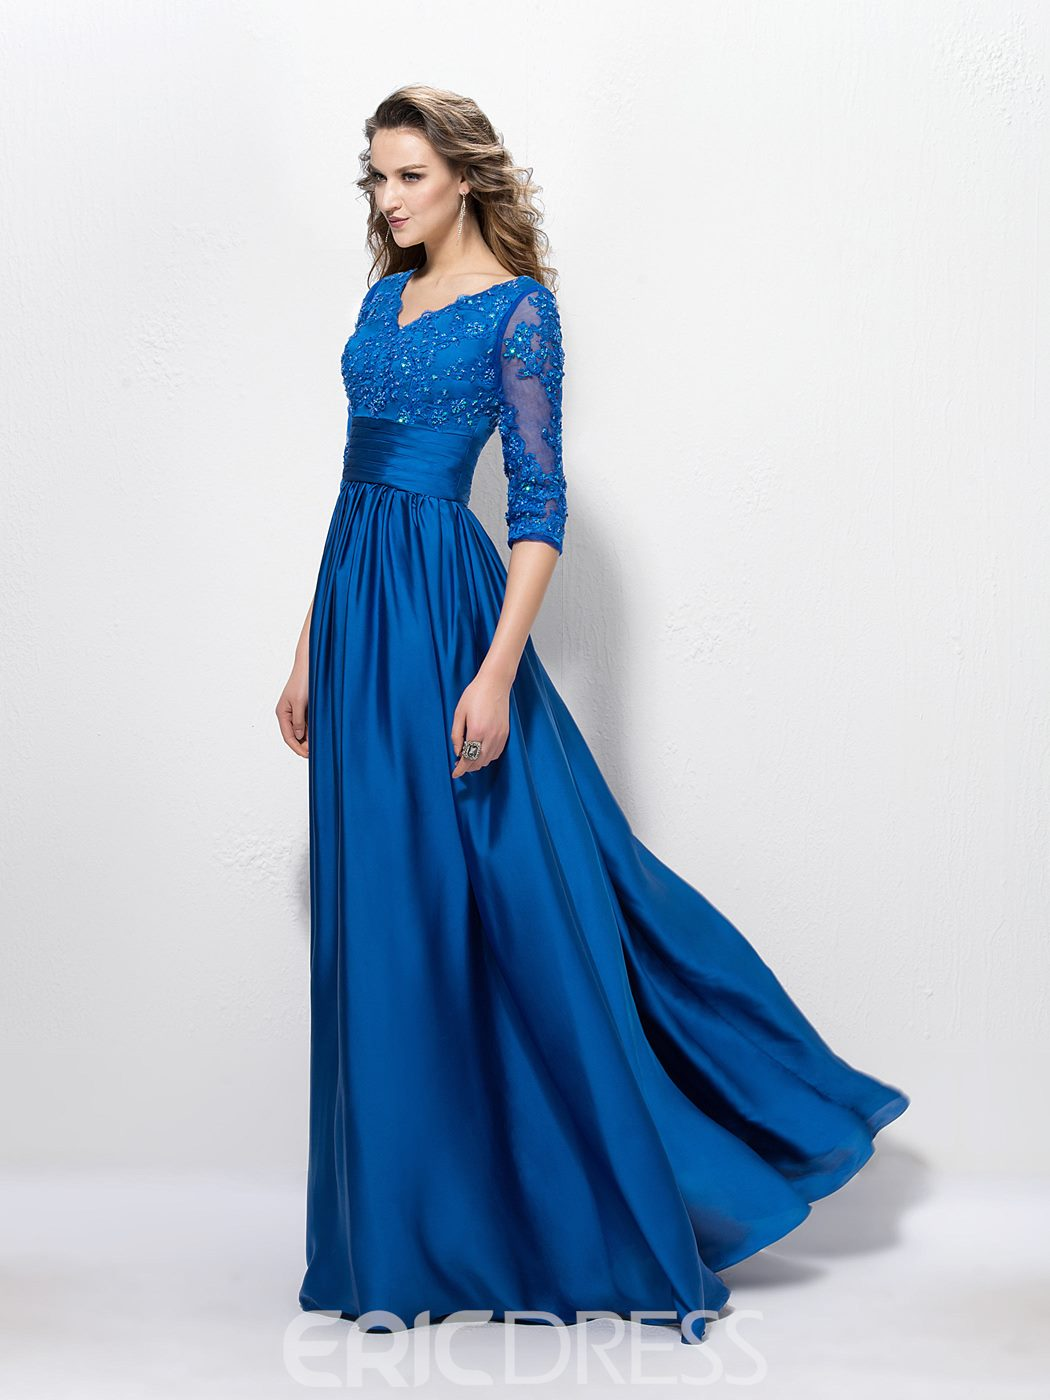 Charming V Neck A-Line Appliques Sequins Half Sleeves Floor-Length Mother of the Bride Dress